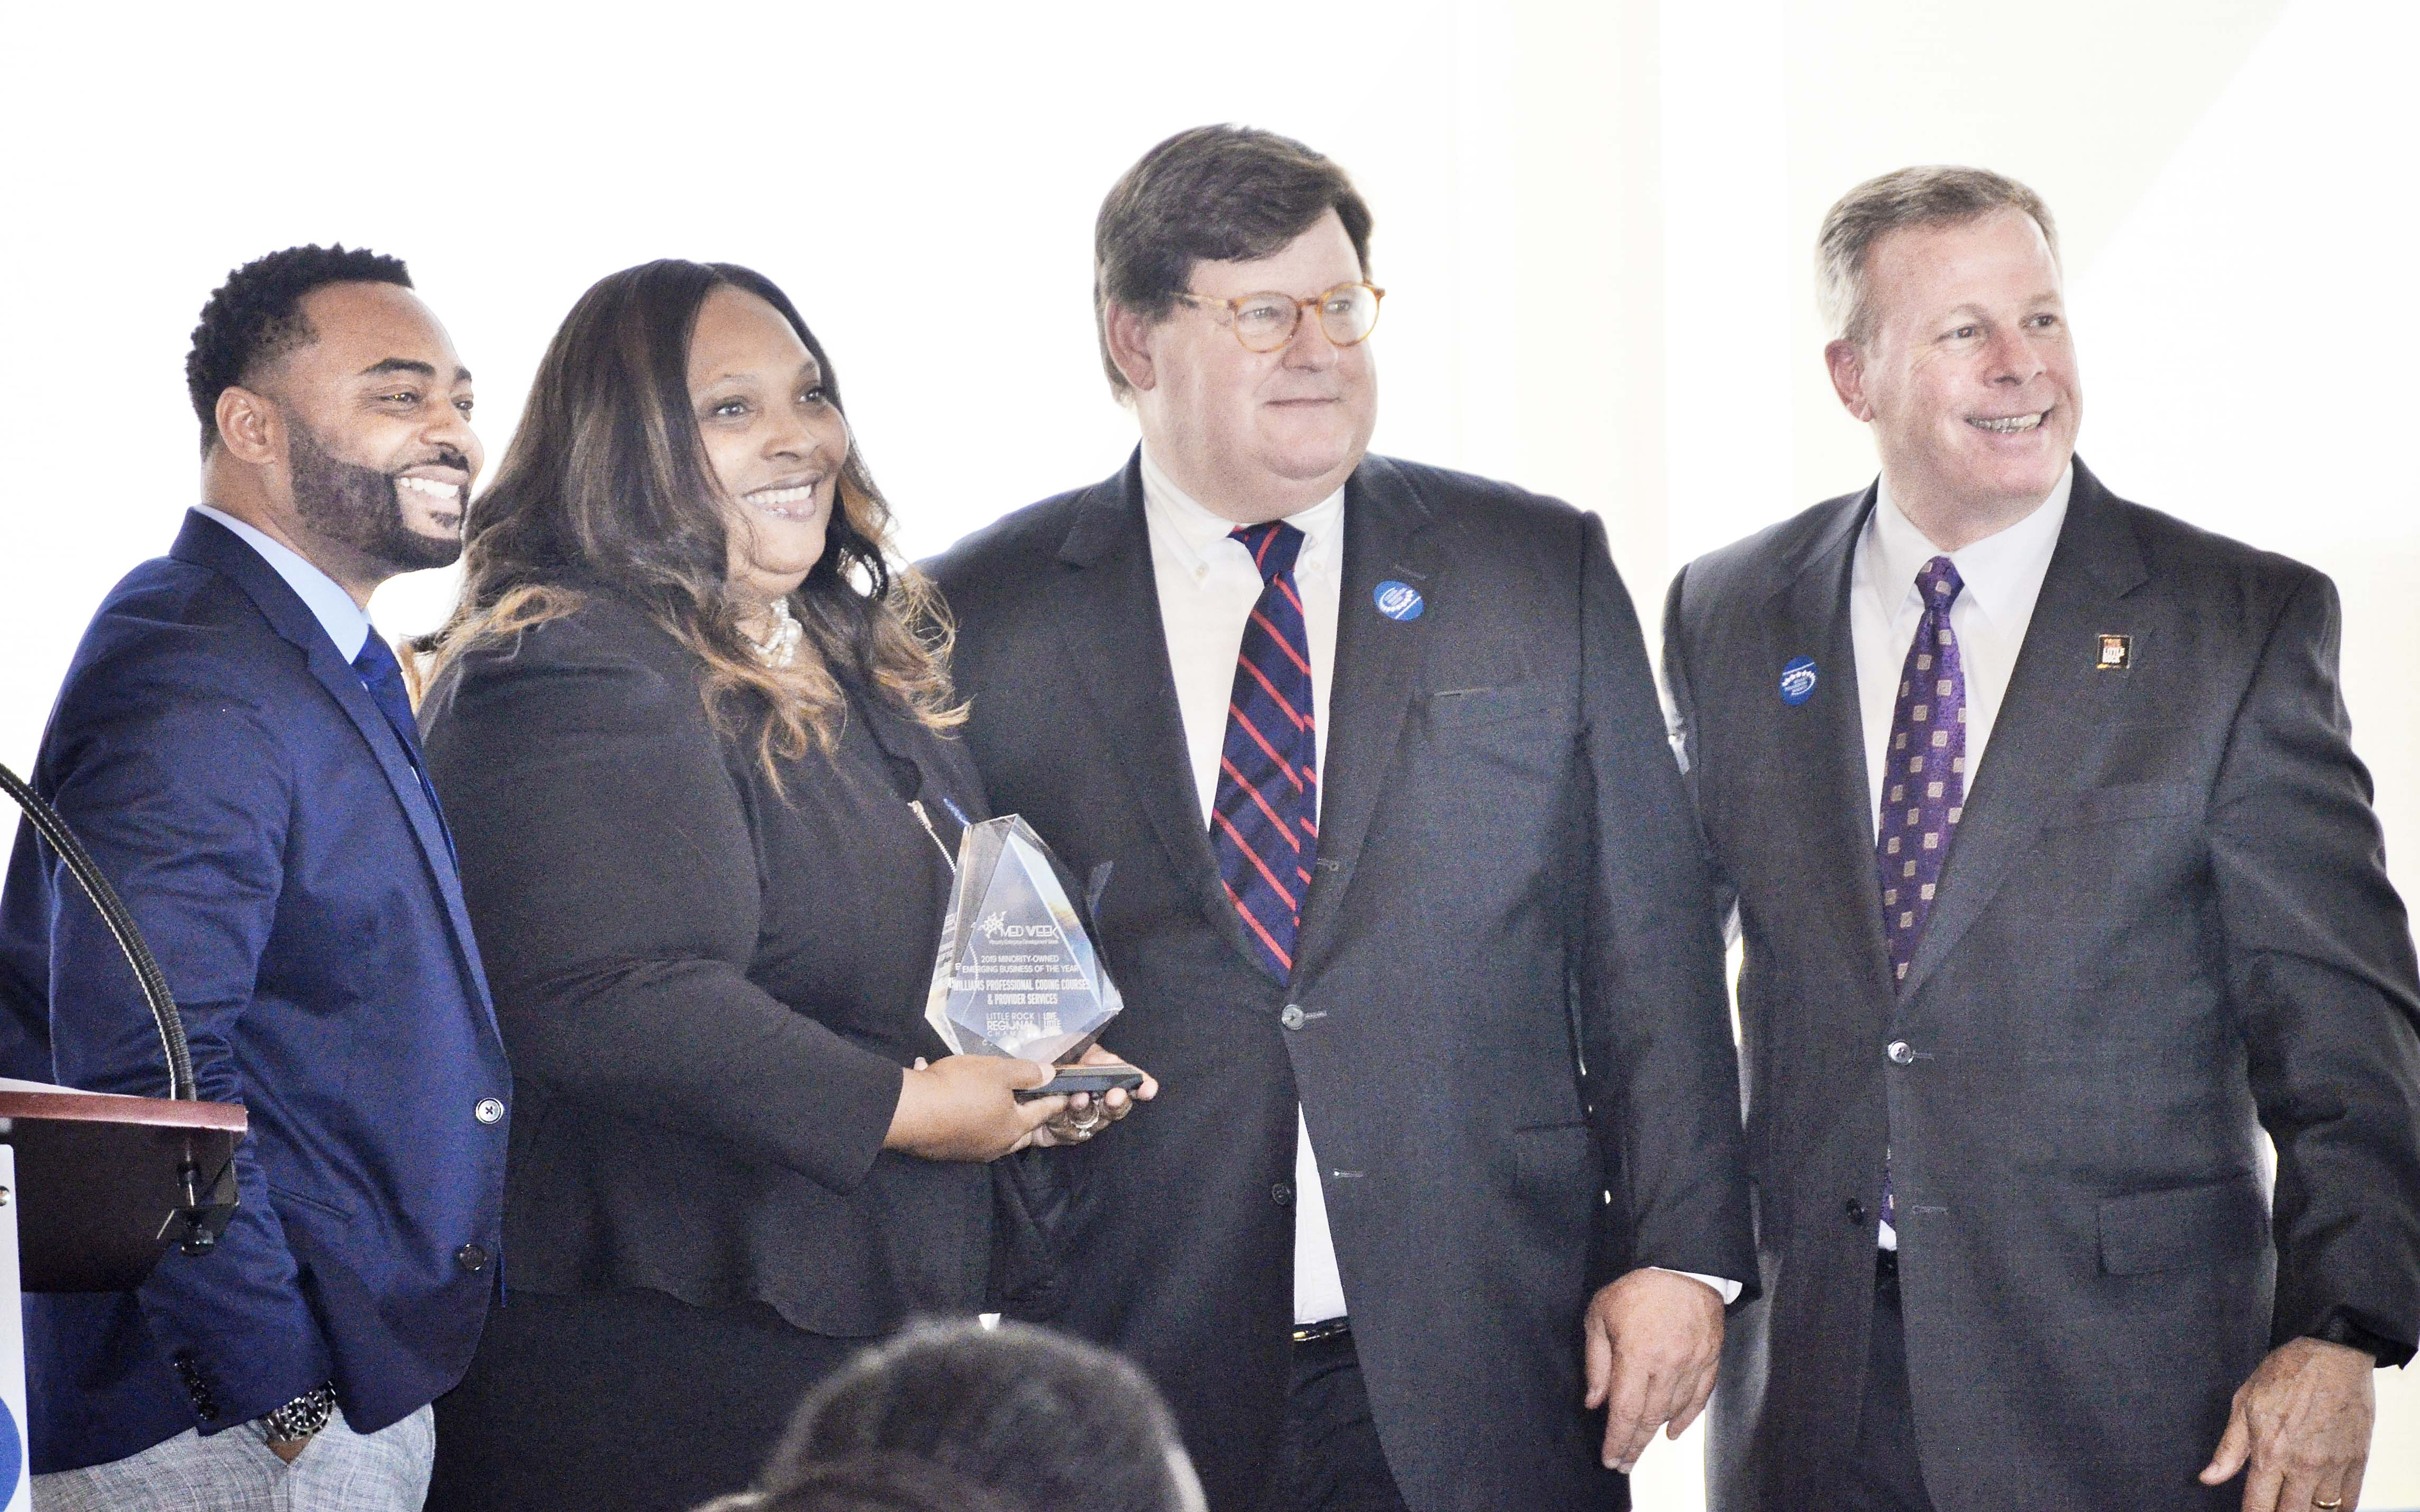 Owner Vickie Williams of Williams Professional Coding Courses & Provider Services was presented with the Emerging Minority Business of the Year award.